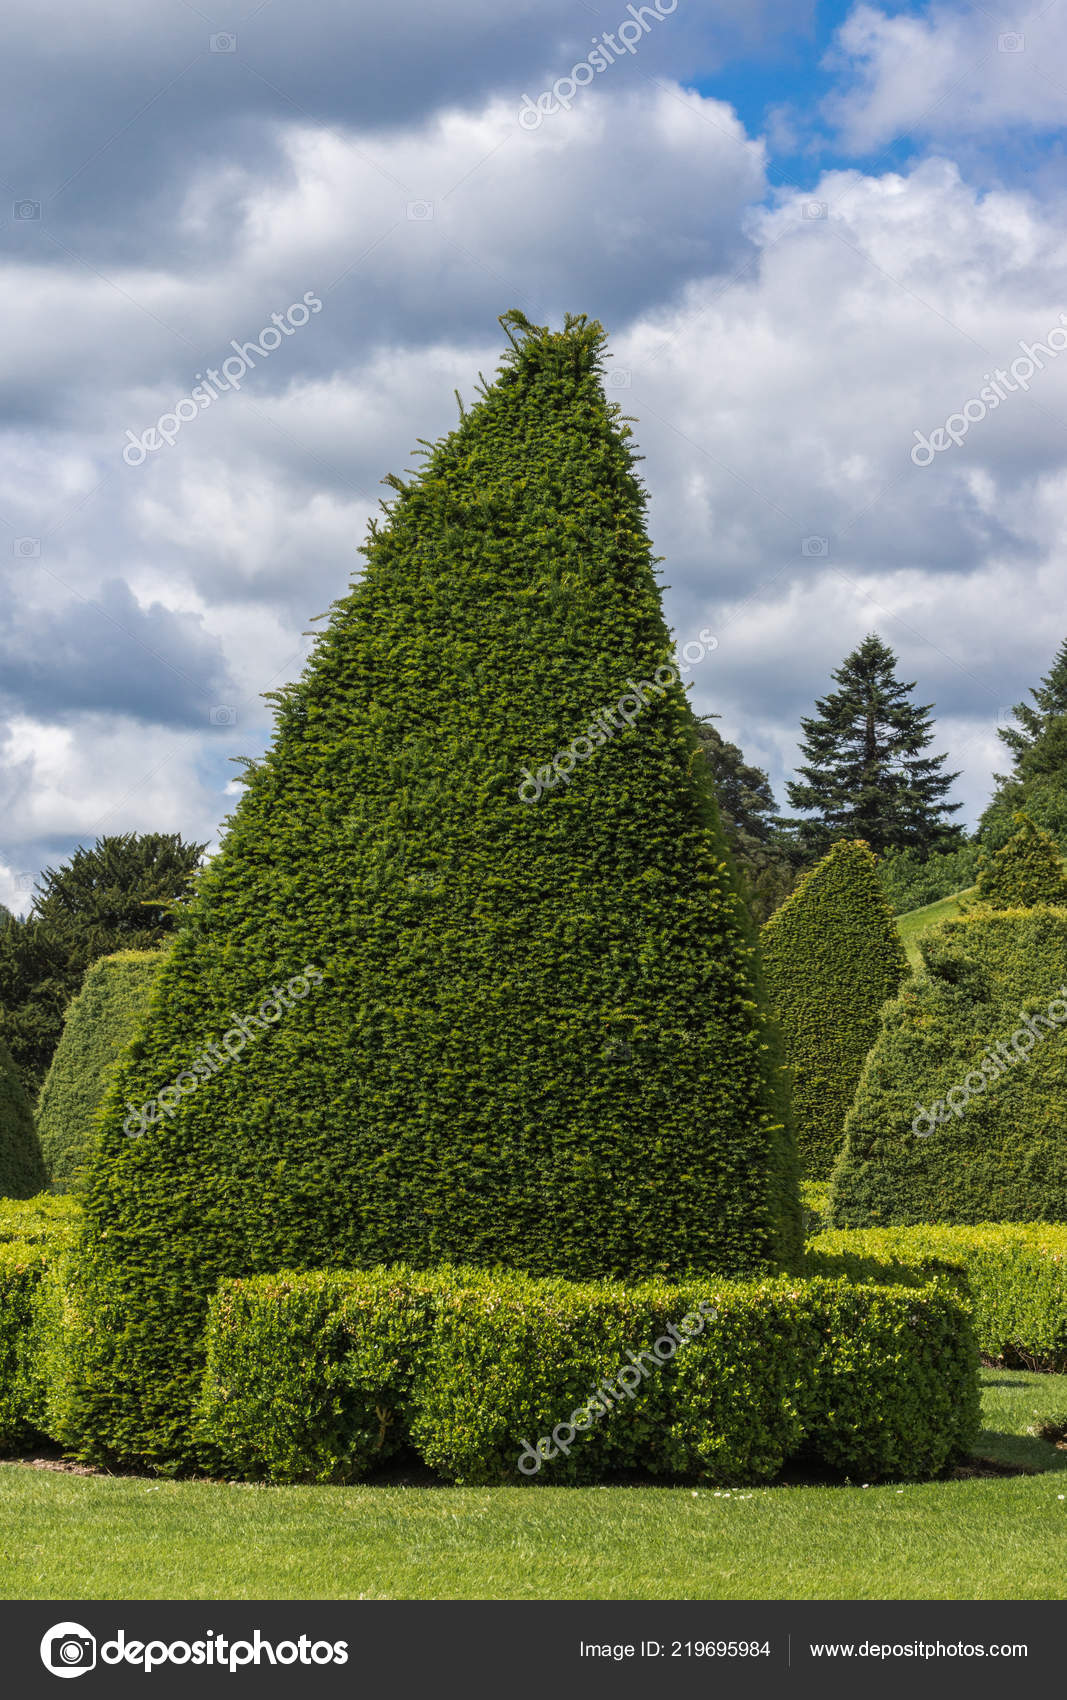 2d92651286 Holm Drumlanrig Scotland June 2012 Scene Garden Green Hedges Cut — Stock  Photo